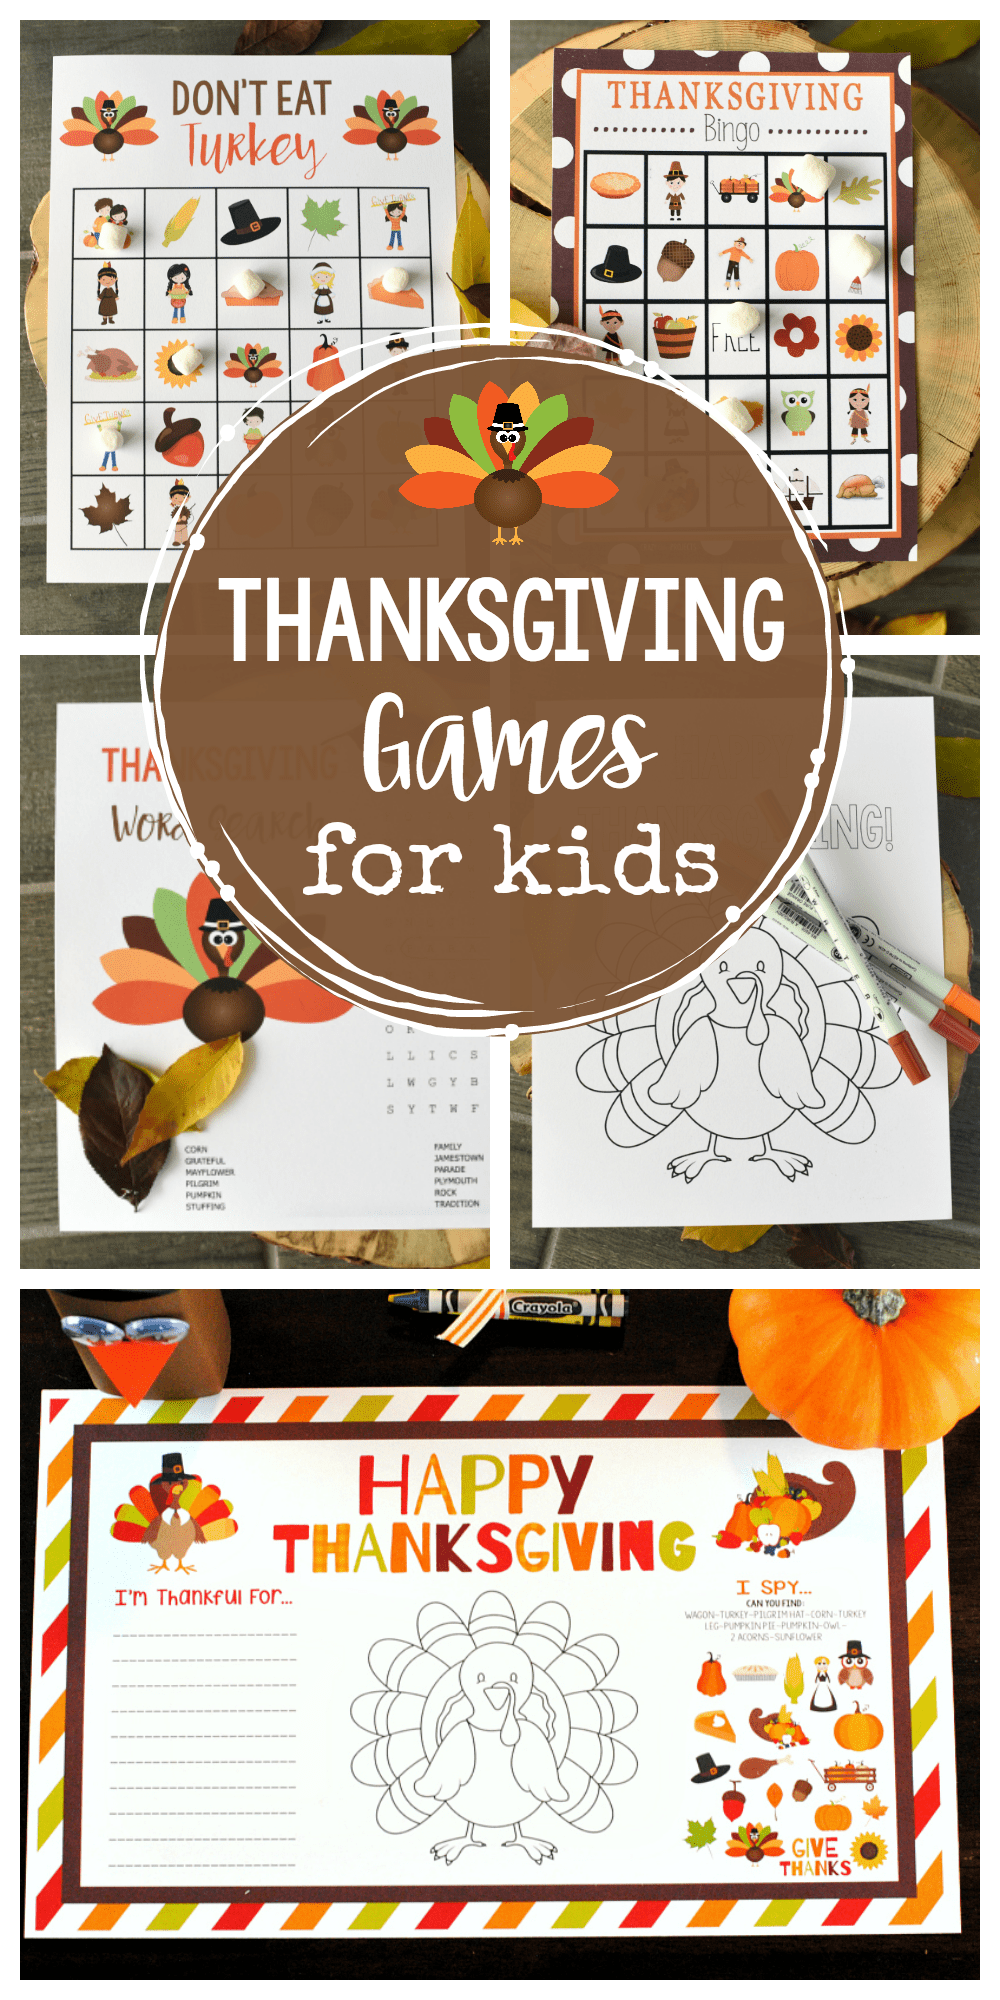 Thanksgiving Games and Activities for Kids-Print and play these fun games and activities for kid while the turkey cooks! Thanksgiving Bingo, word search, coloring pages and Don't Eat Pete. #thanksgiving #thanksgivingfun #kidsactivties